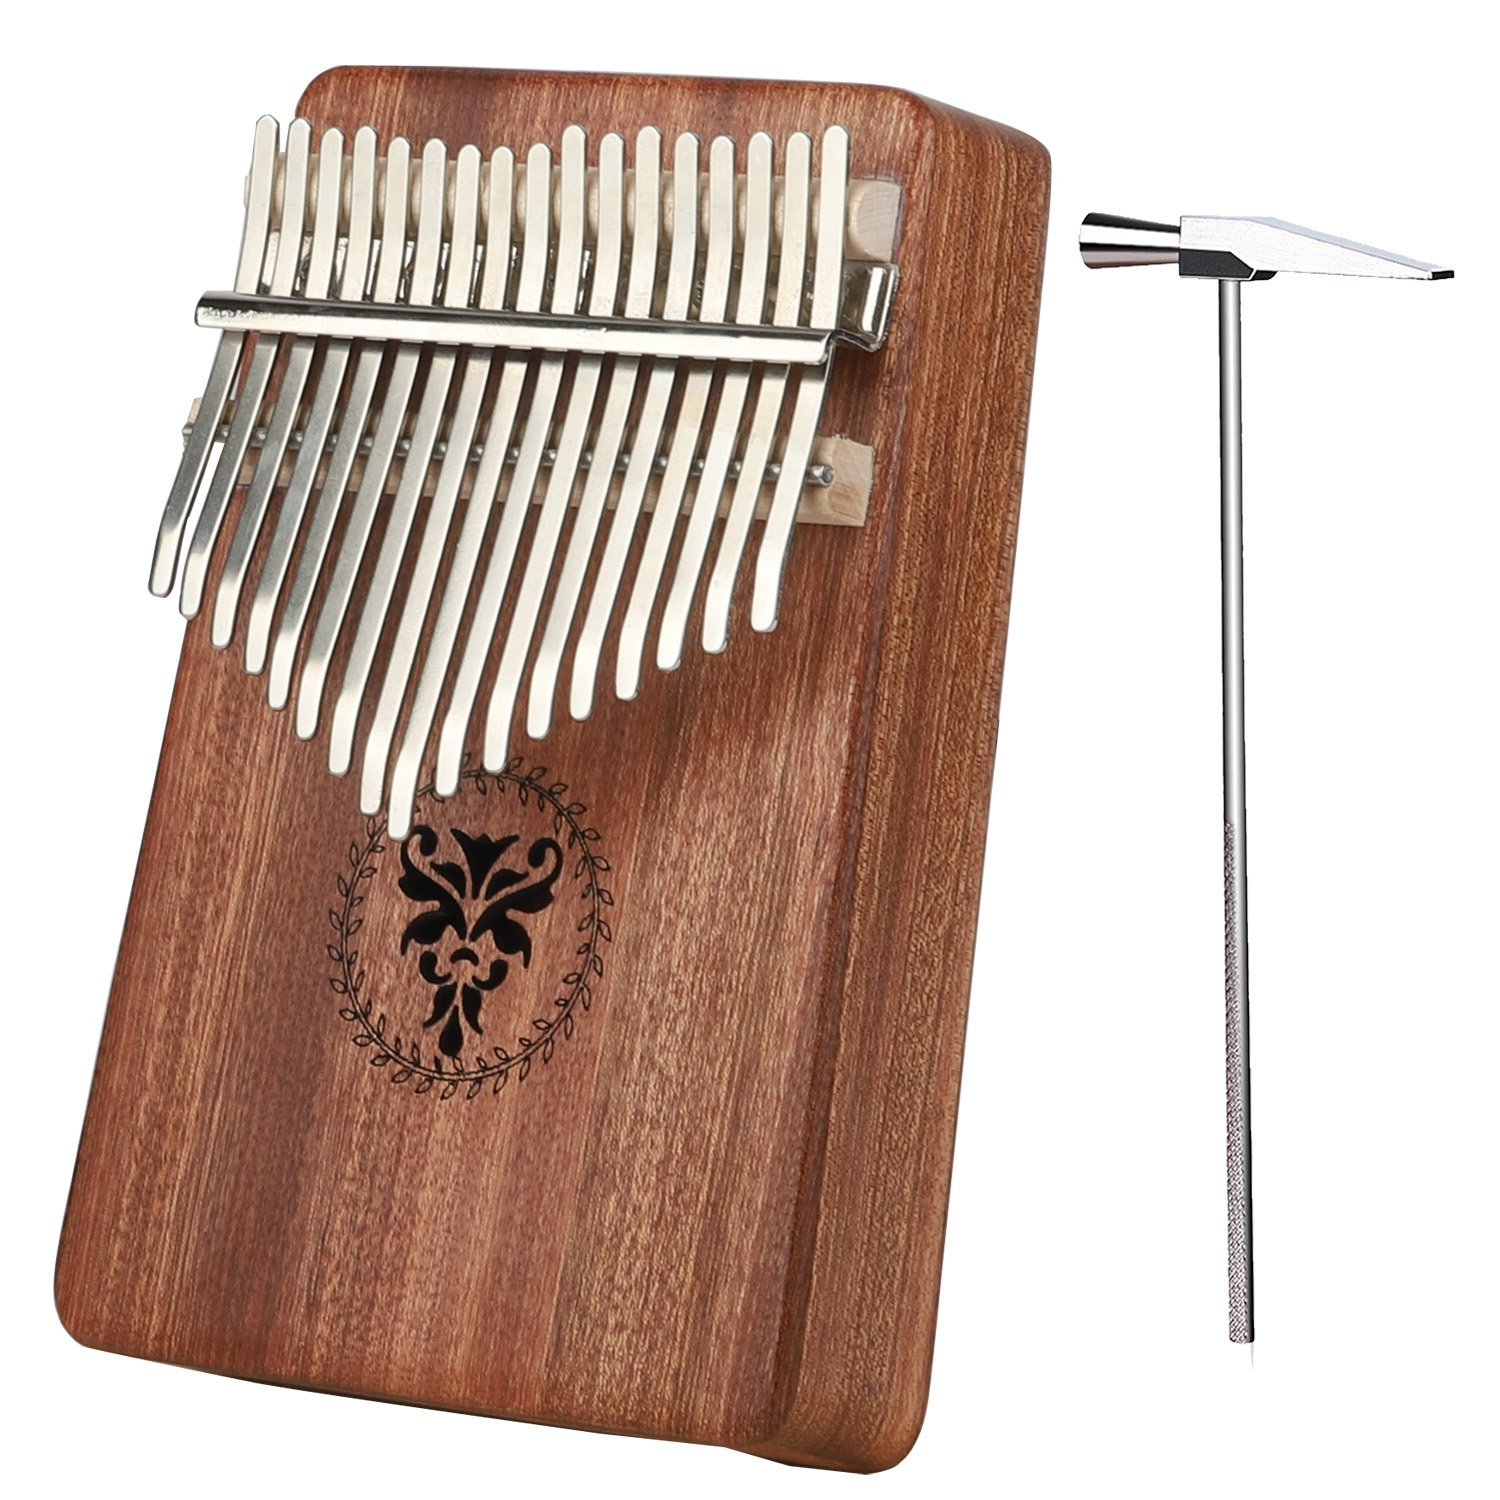 Kalimba Thumb Pianos 17 keys African Mahogany Solid Body with Tutorial, Tune Hammer and Portable Bag, Easy to Learn